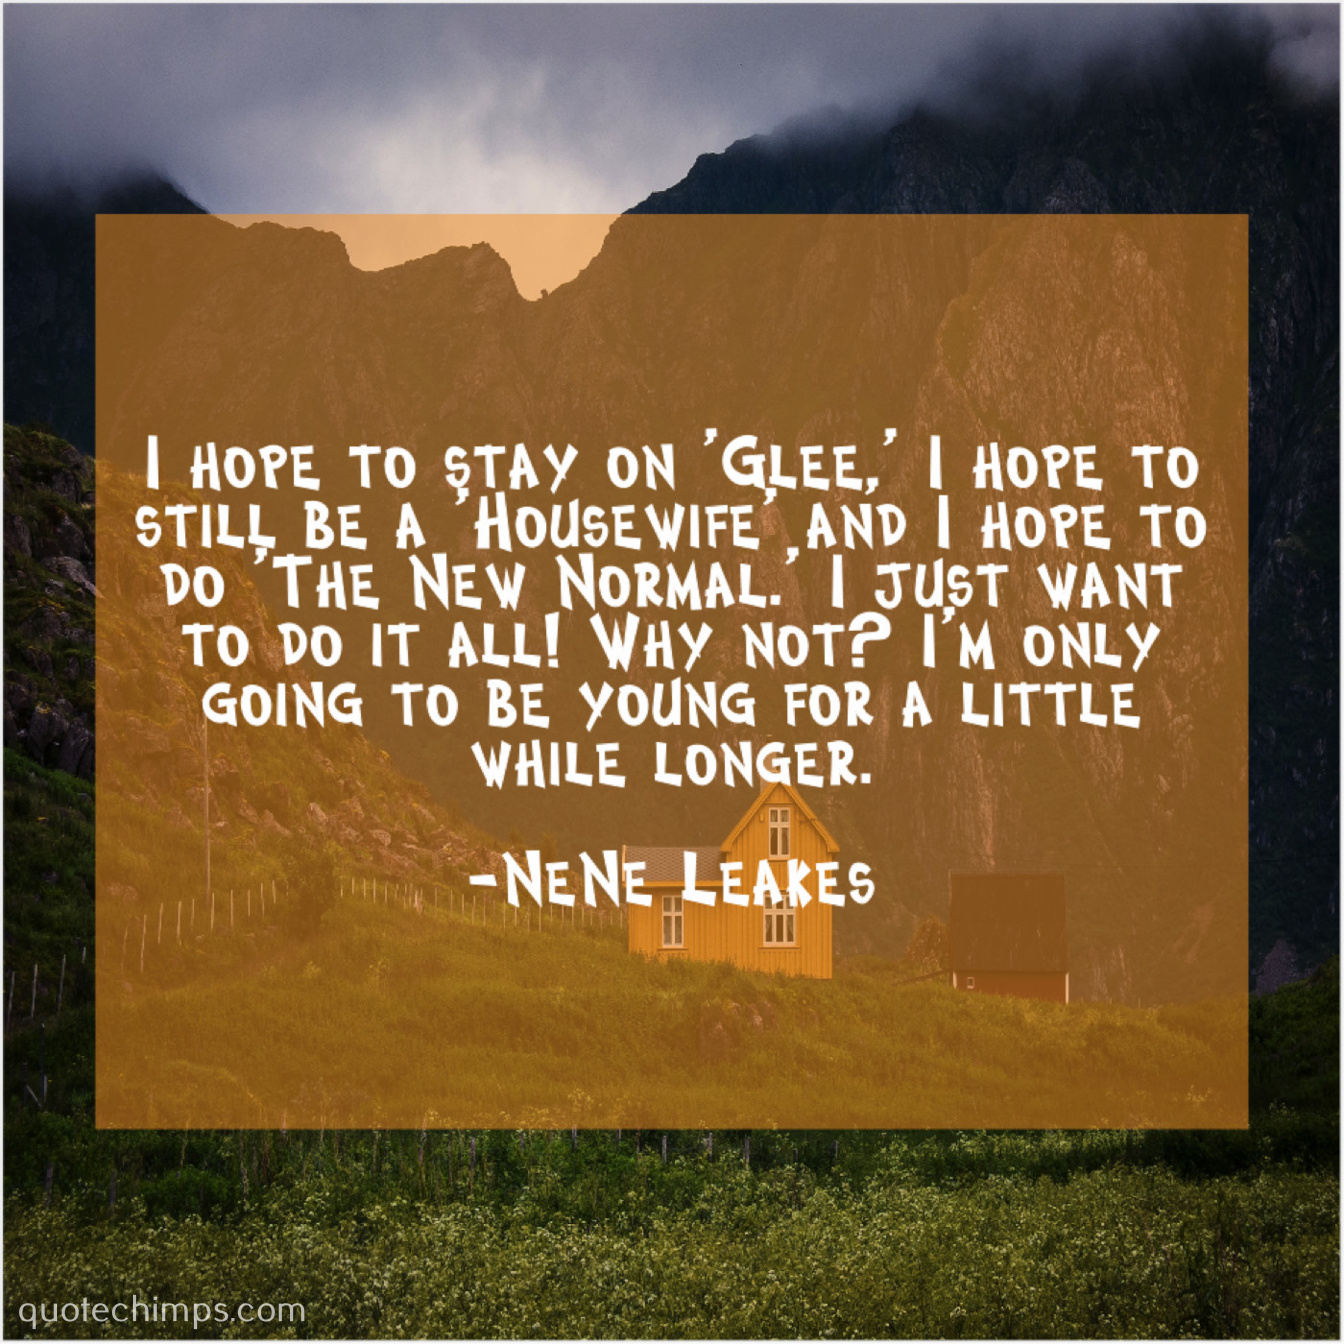 Nene Leakes I Hope To Stay On Quote Chimps